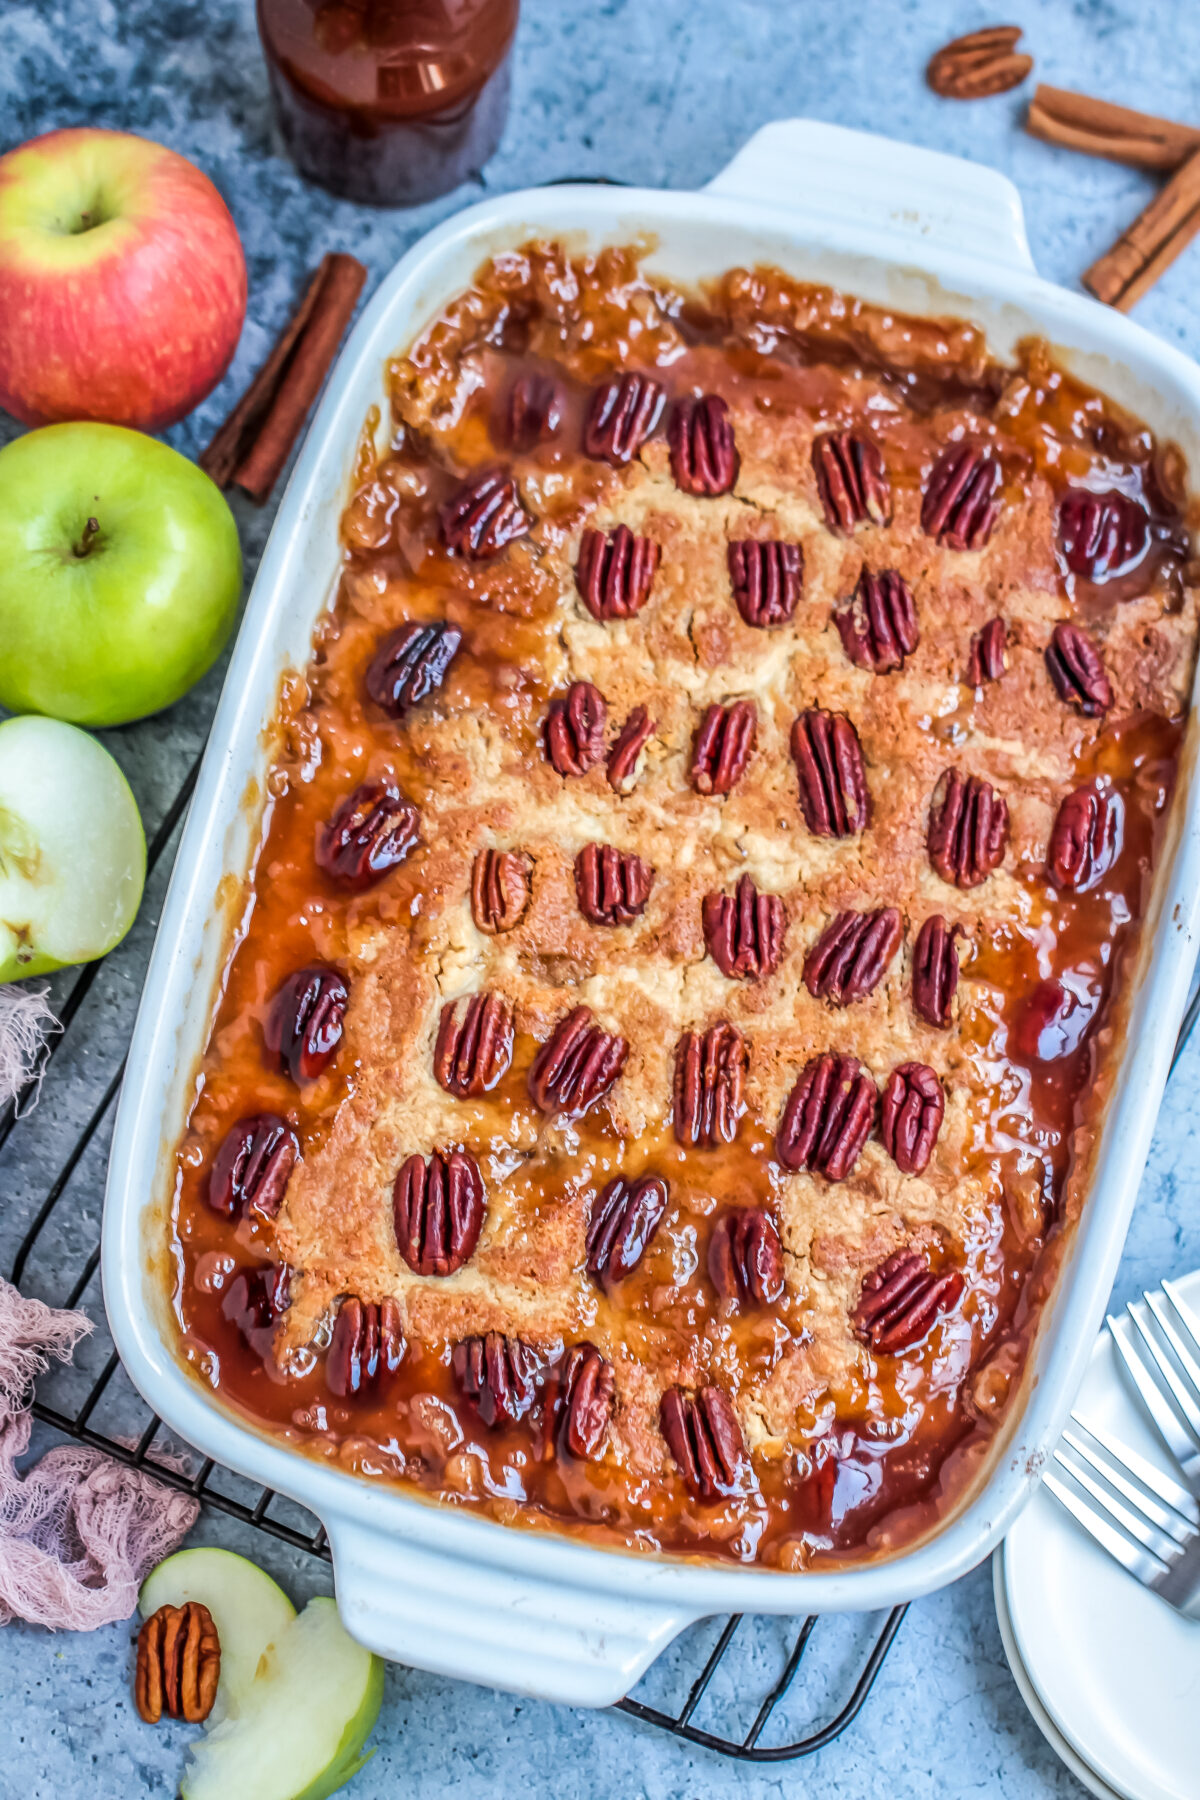 A delicious apple dump cake recipe that is easy to prepare and makes a great fall dessert served warm with ice cream and caramel sauce!